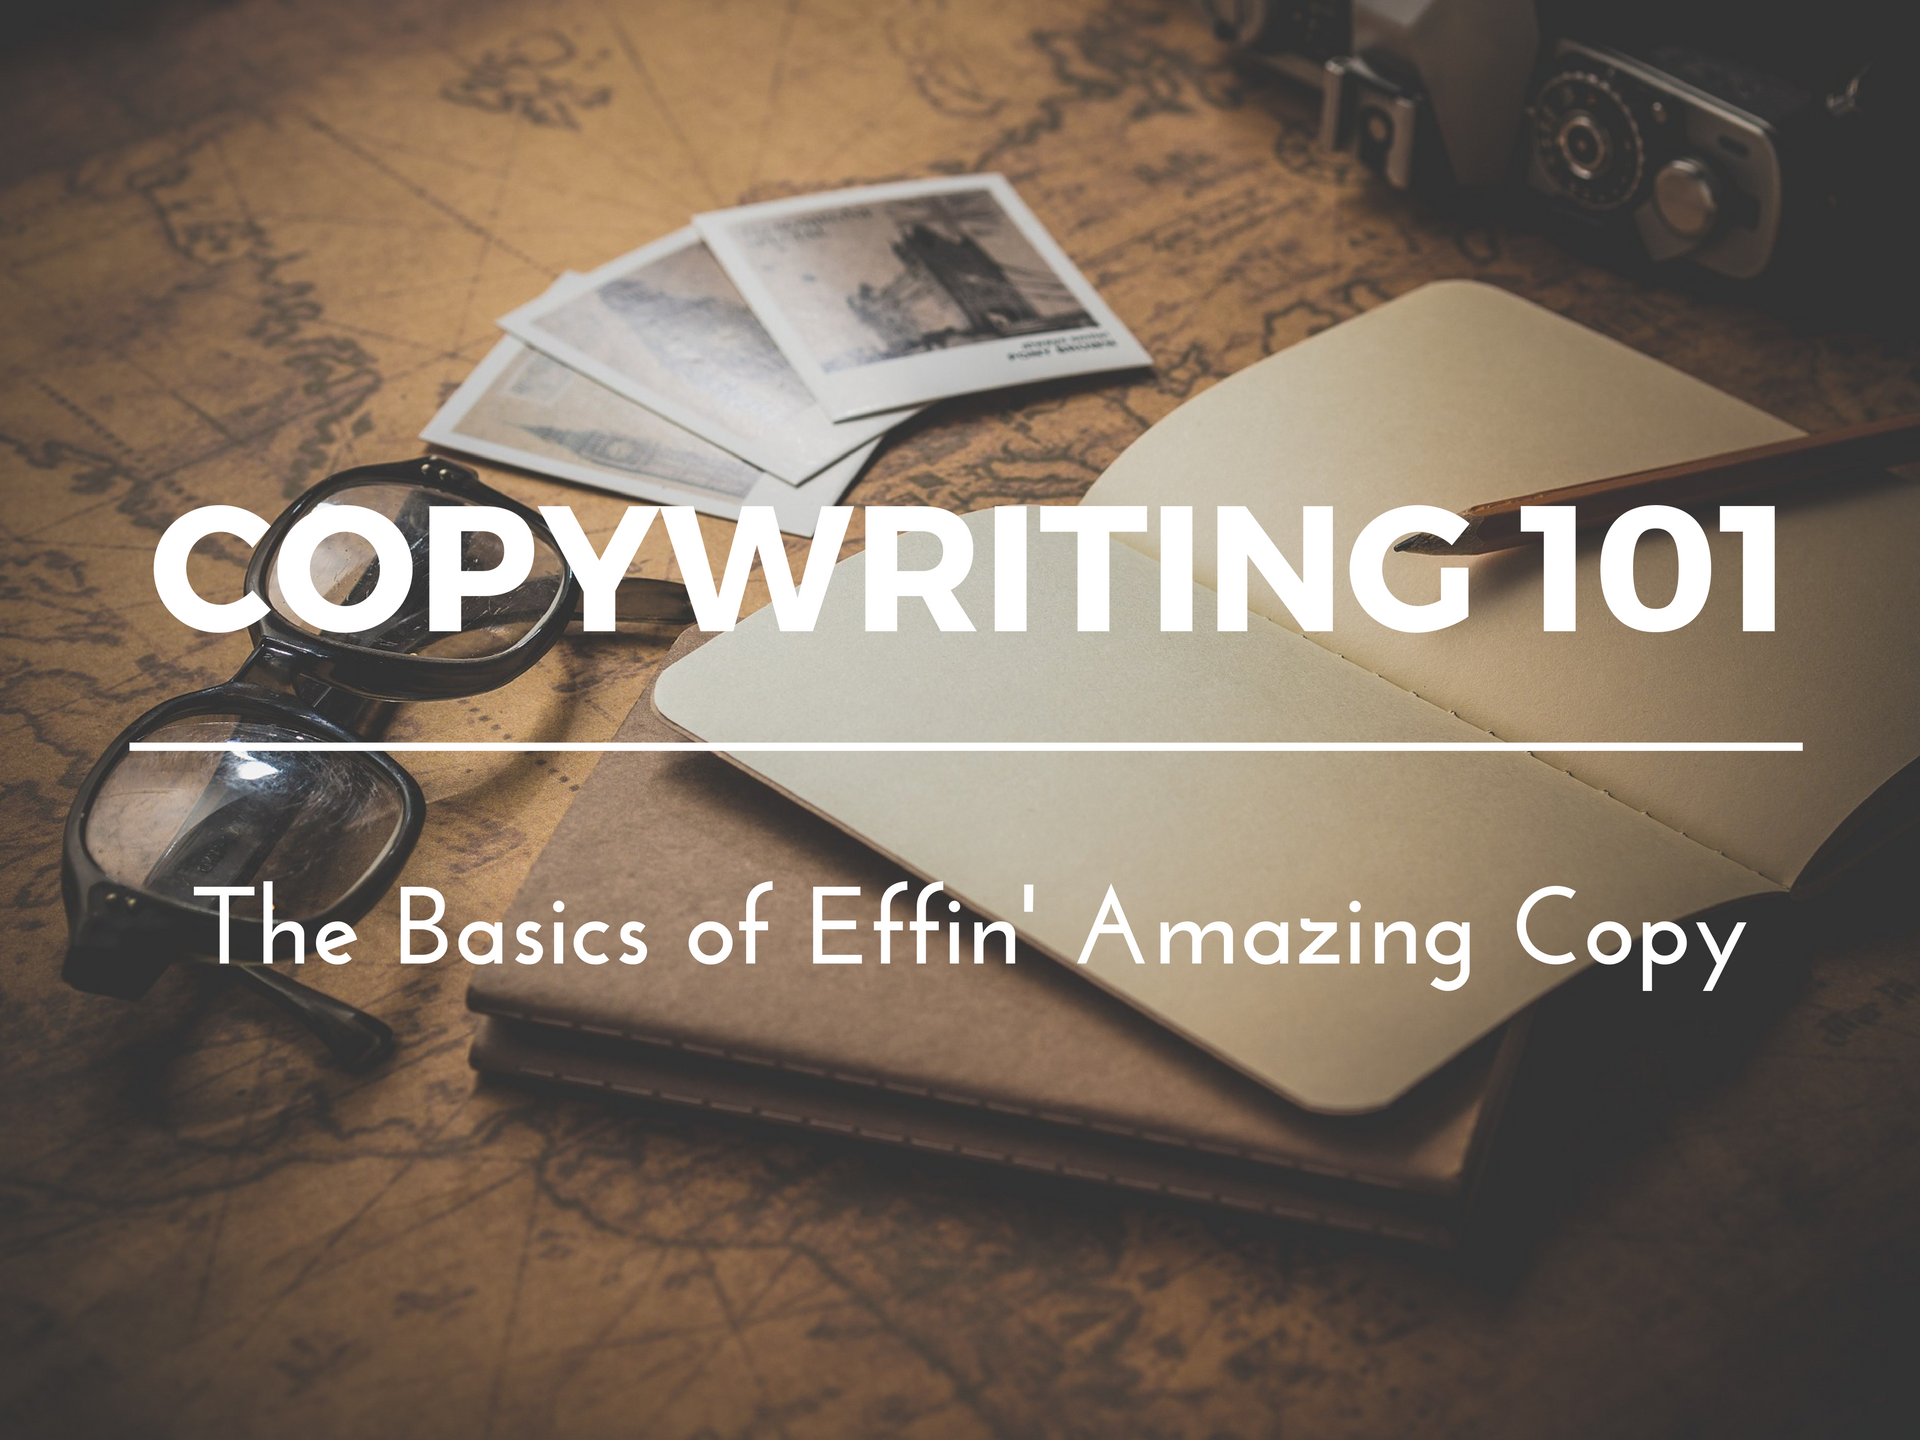 Copywriting 101: The Basics of Effin Amazing Copy